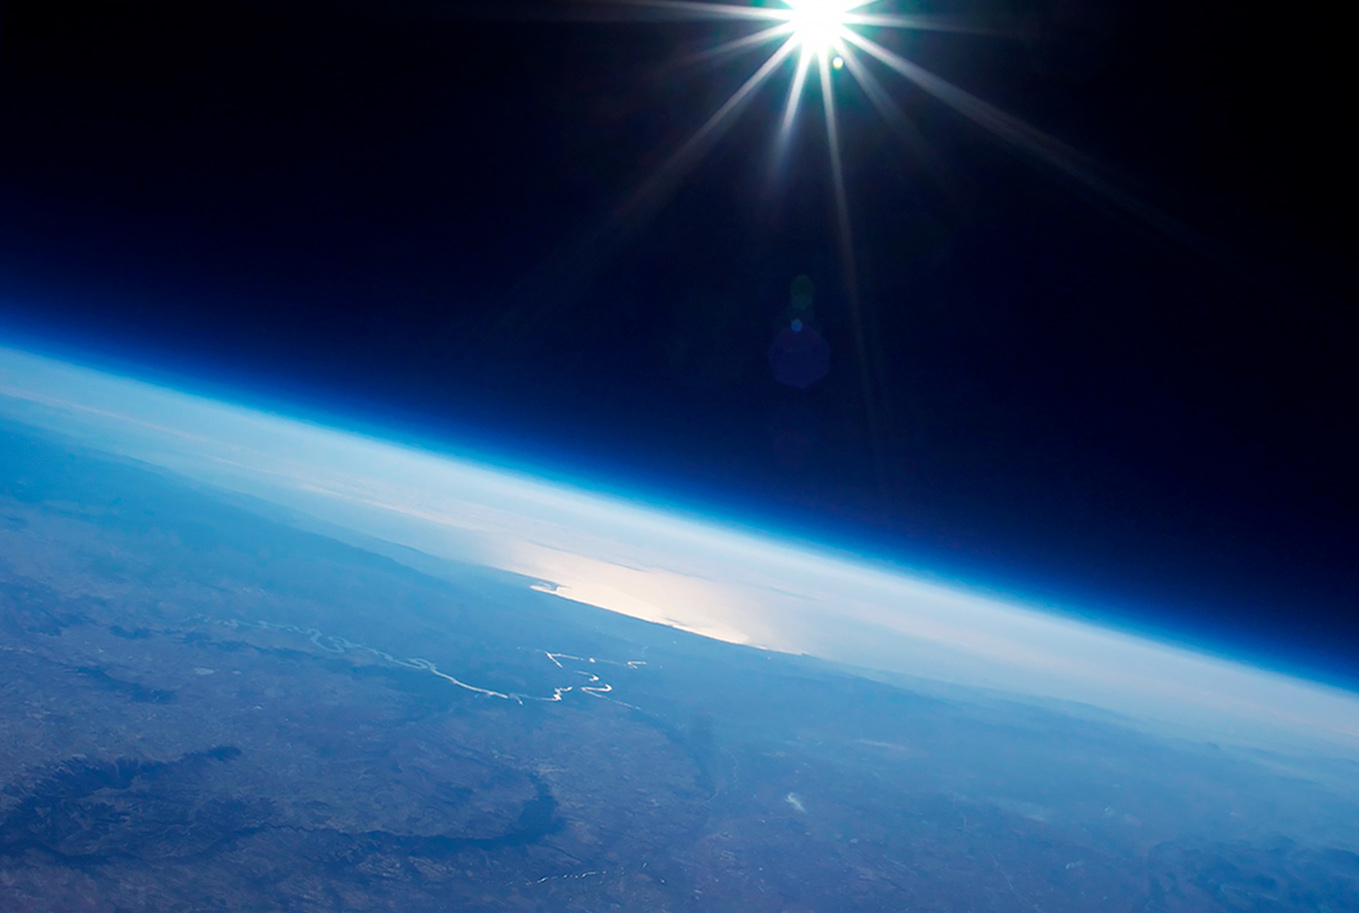 Earth view on High Altitude Balloon Ride